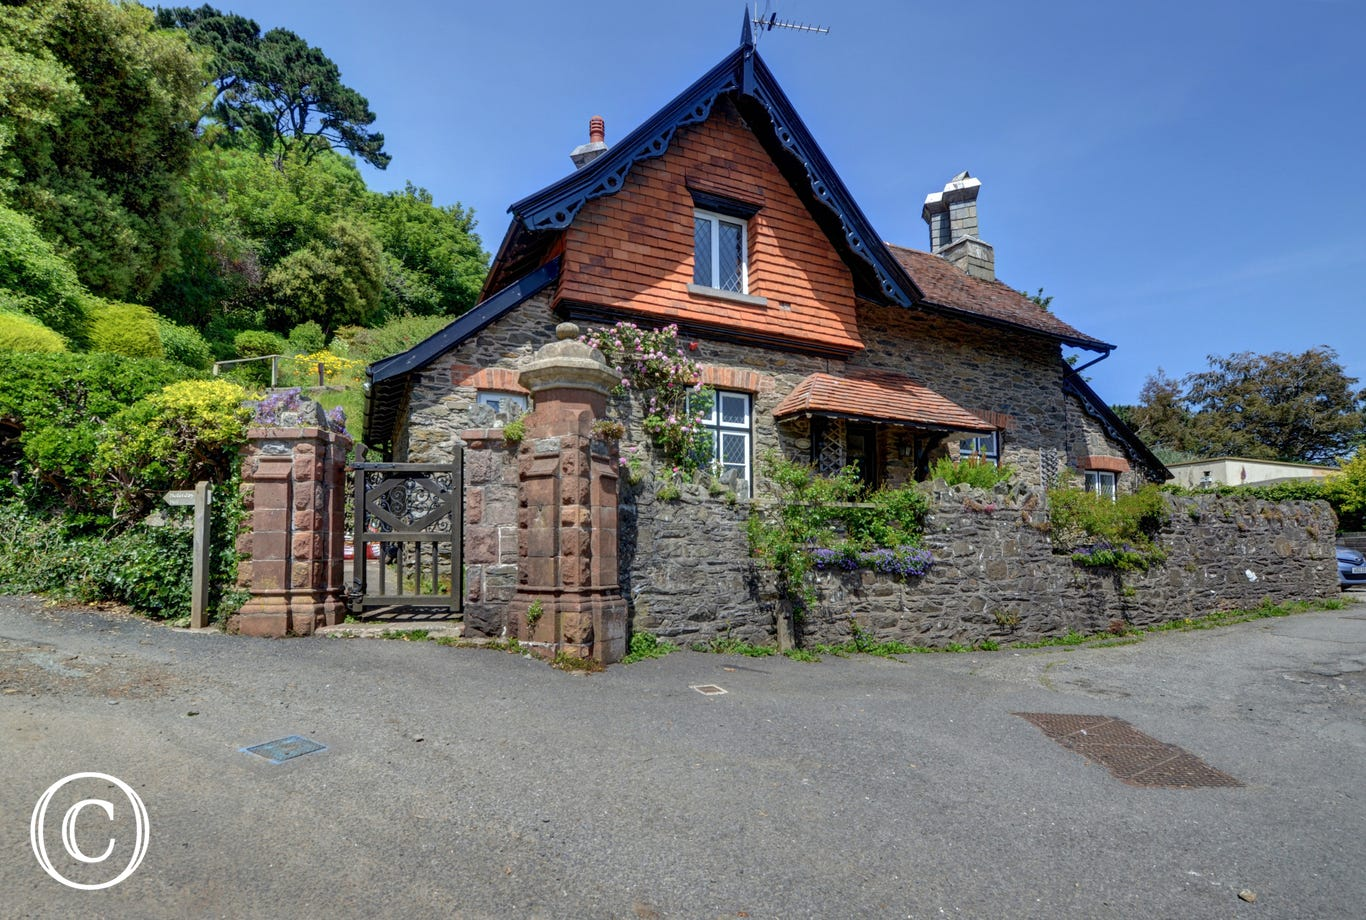 Hollerday Cottage nestles on the hillside overlooking the delightful Exmoor coastal village of Lynton